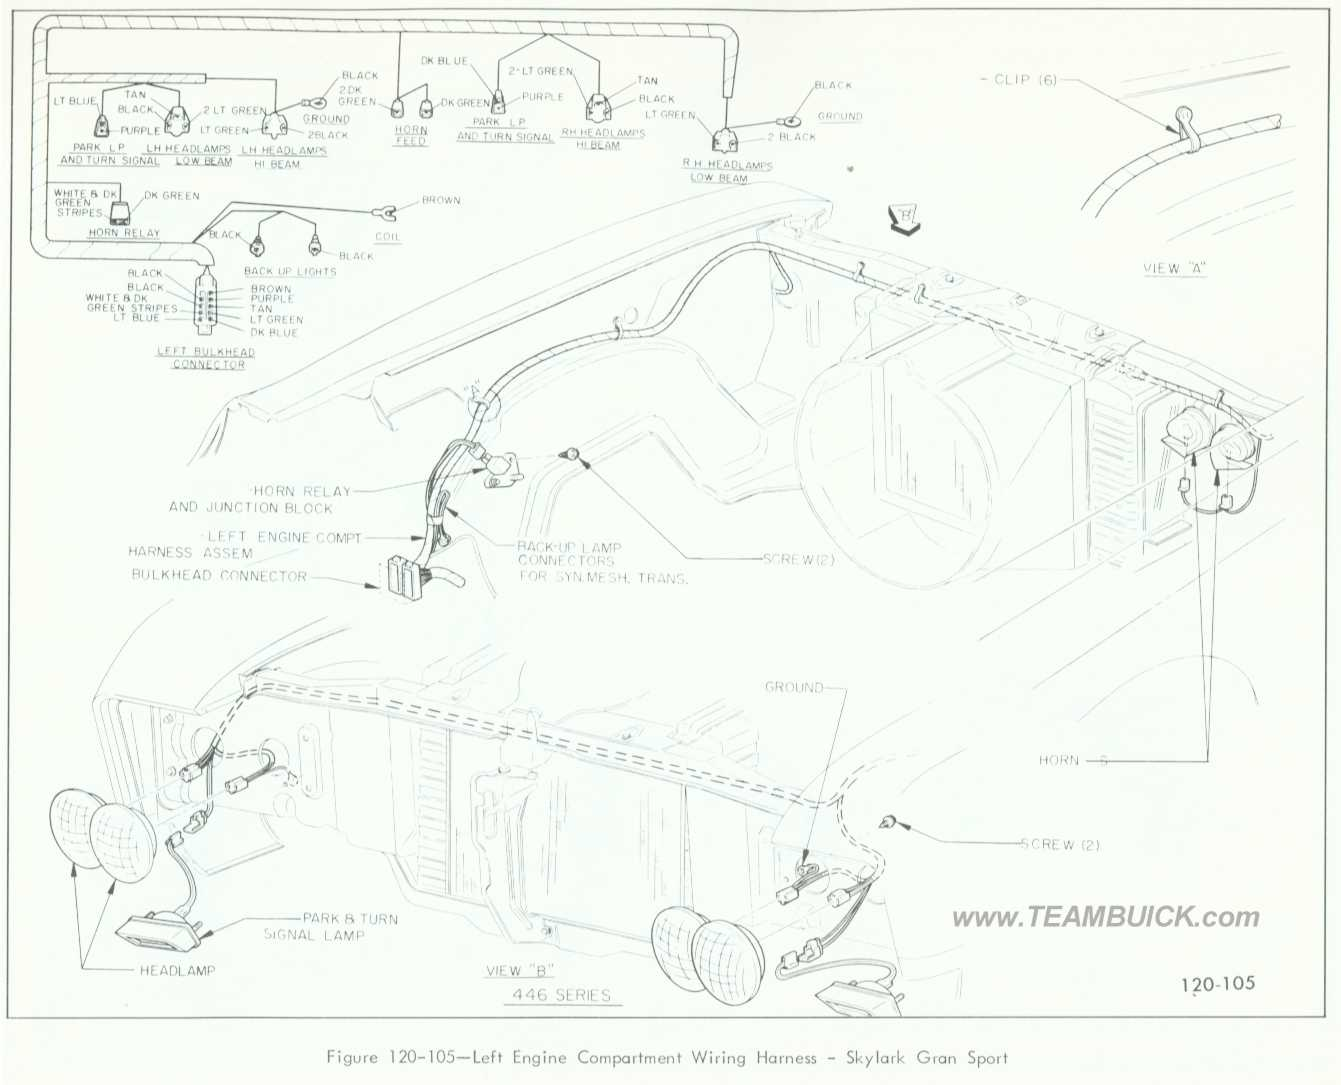 Engine Compartment Wiring Diagram For Buick Skylark